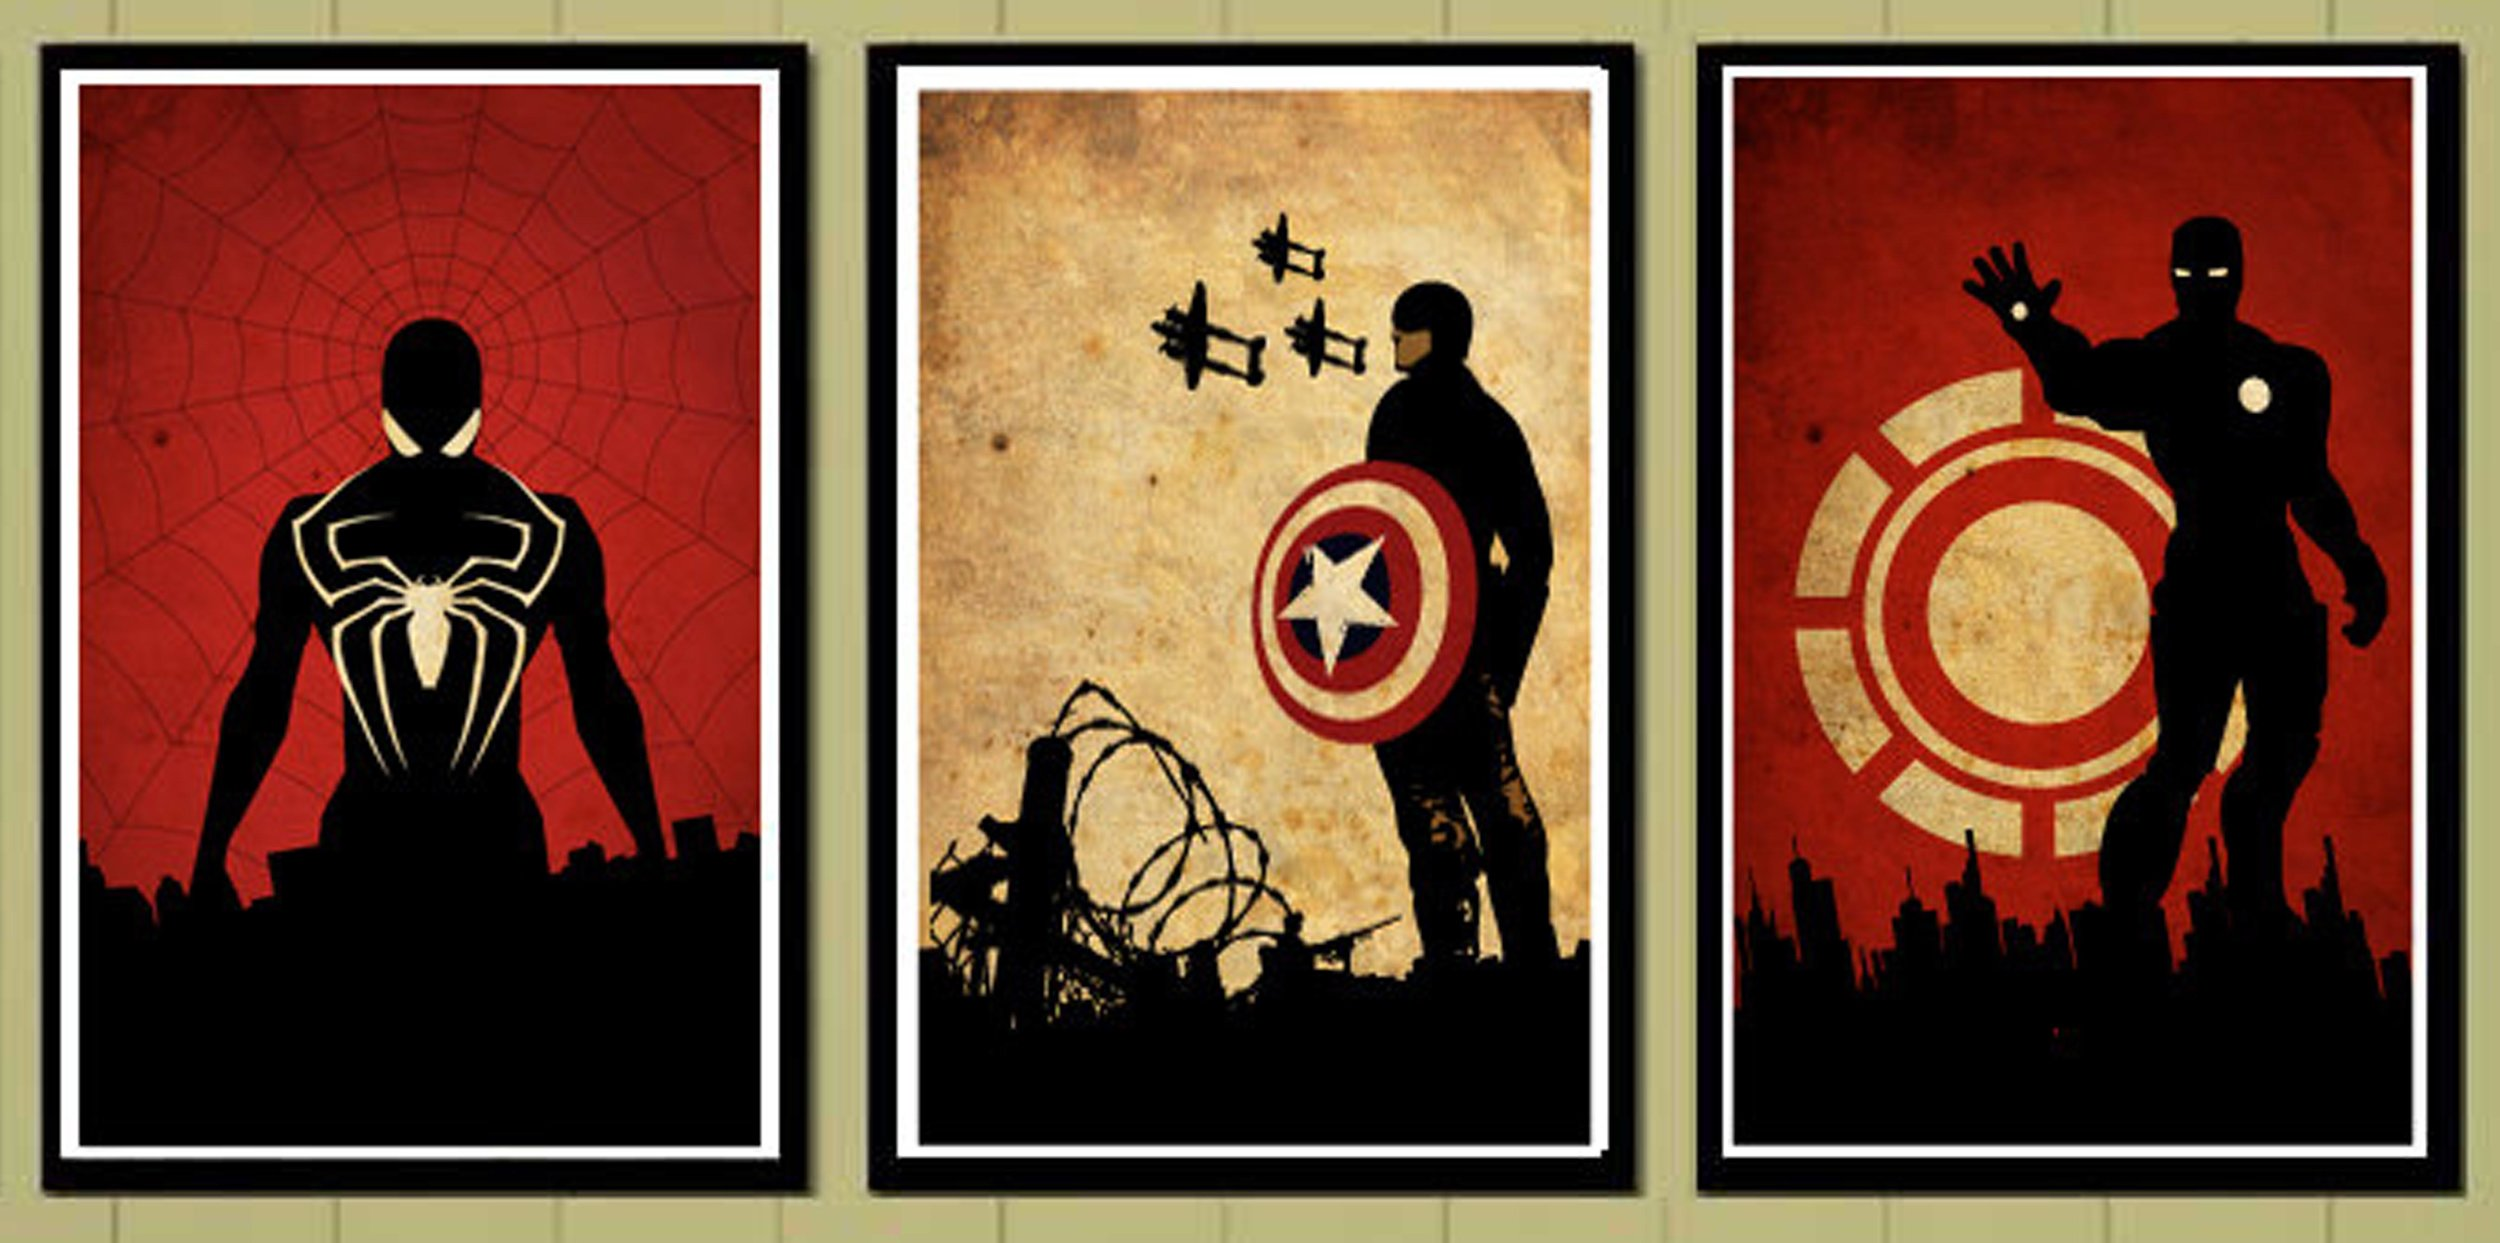 Image series via  Wallpaper.zone community  celebrating Marvel Superheroes, from left, Spiderman, Captain America and Iron Man.